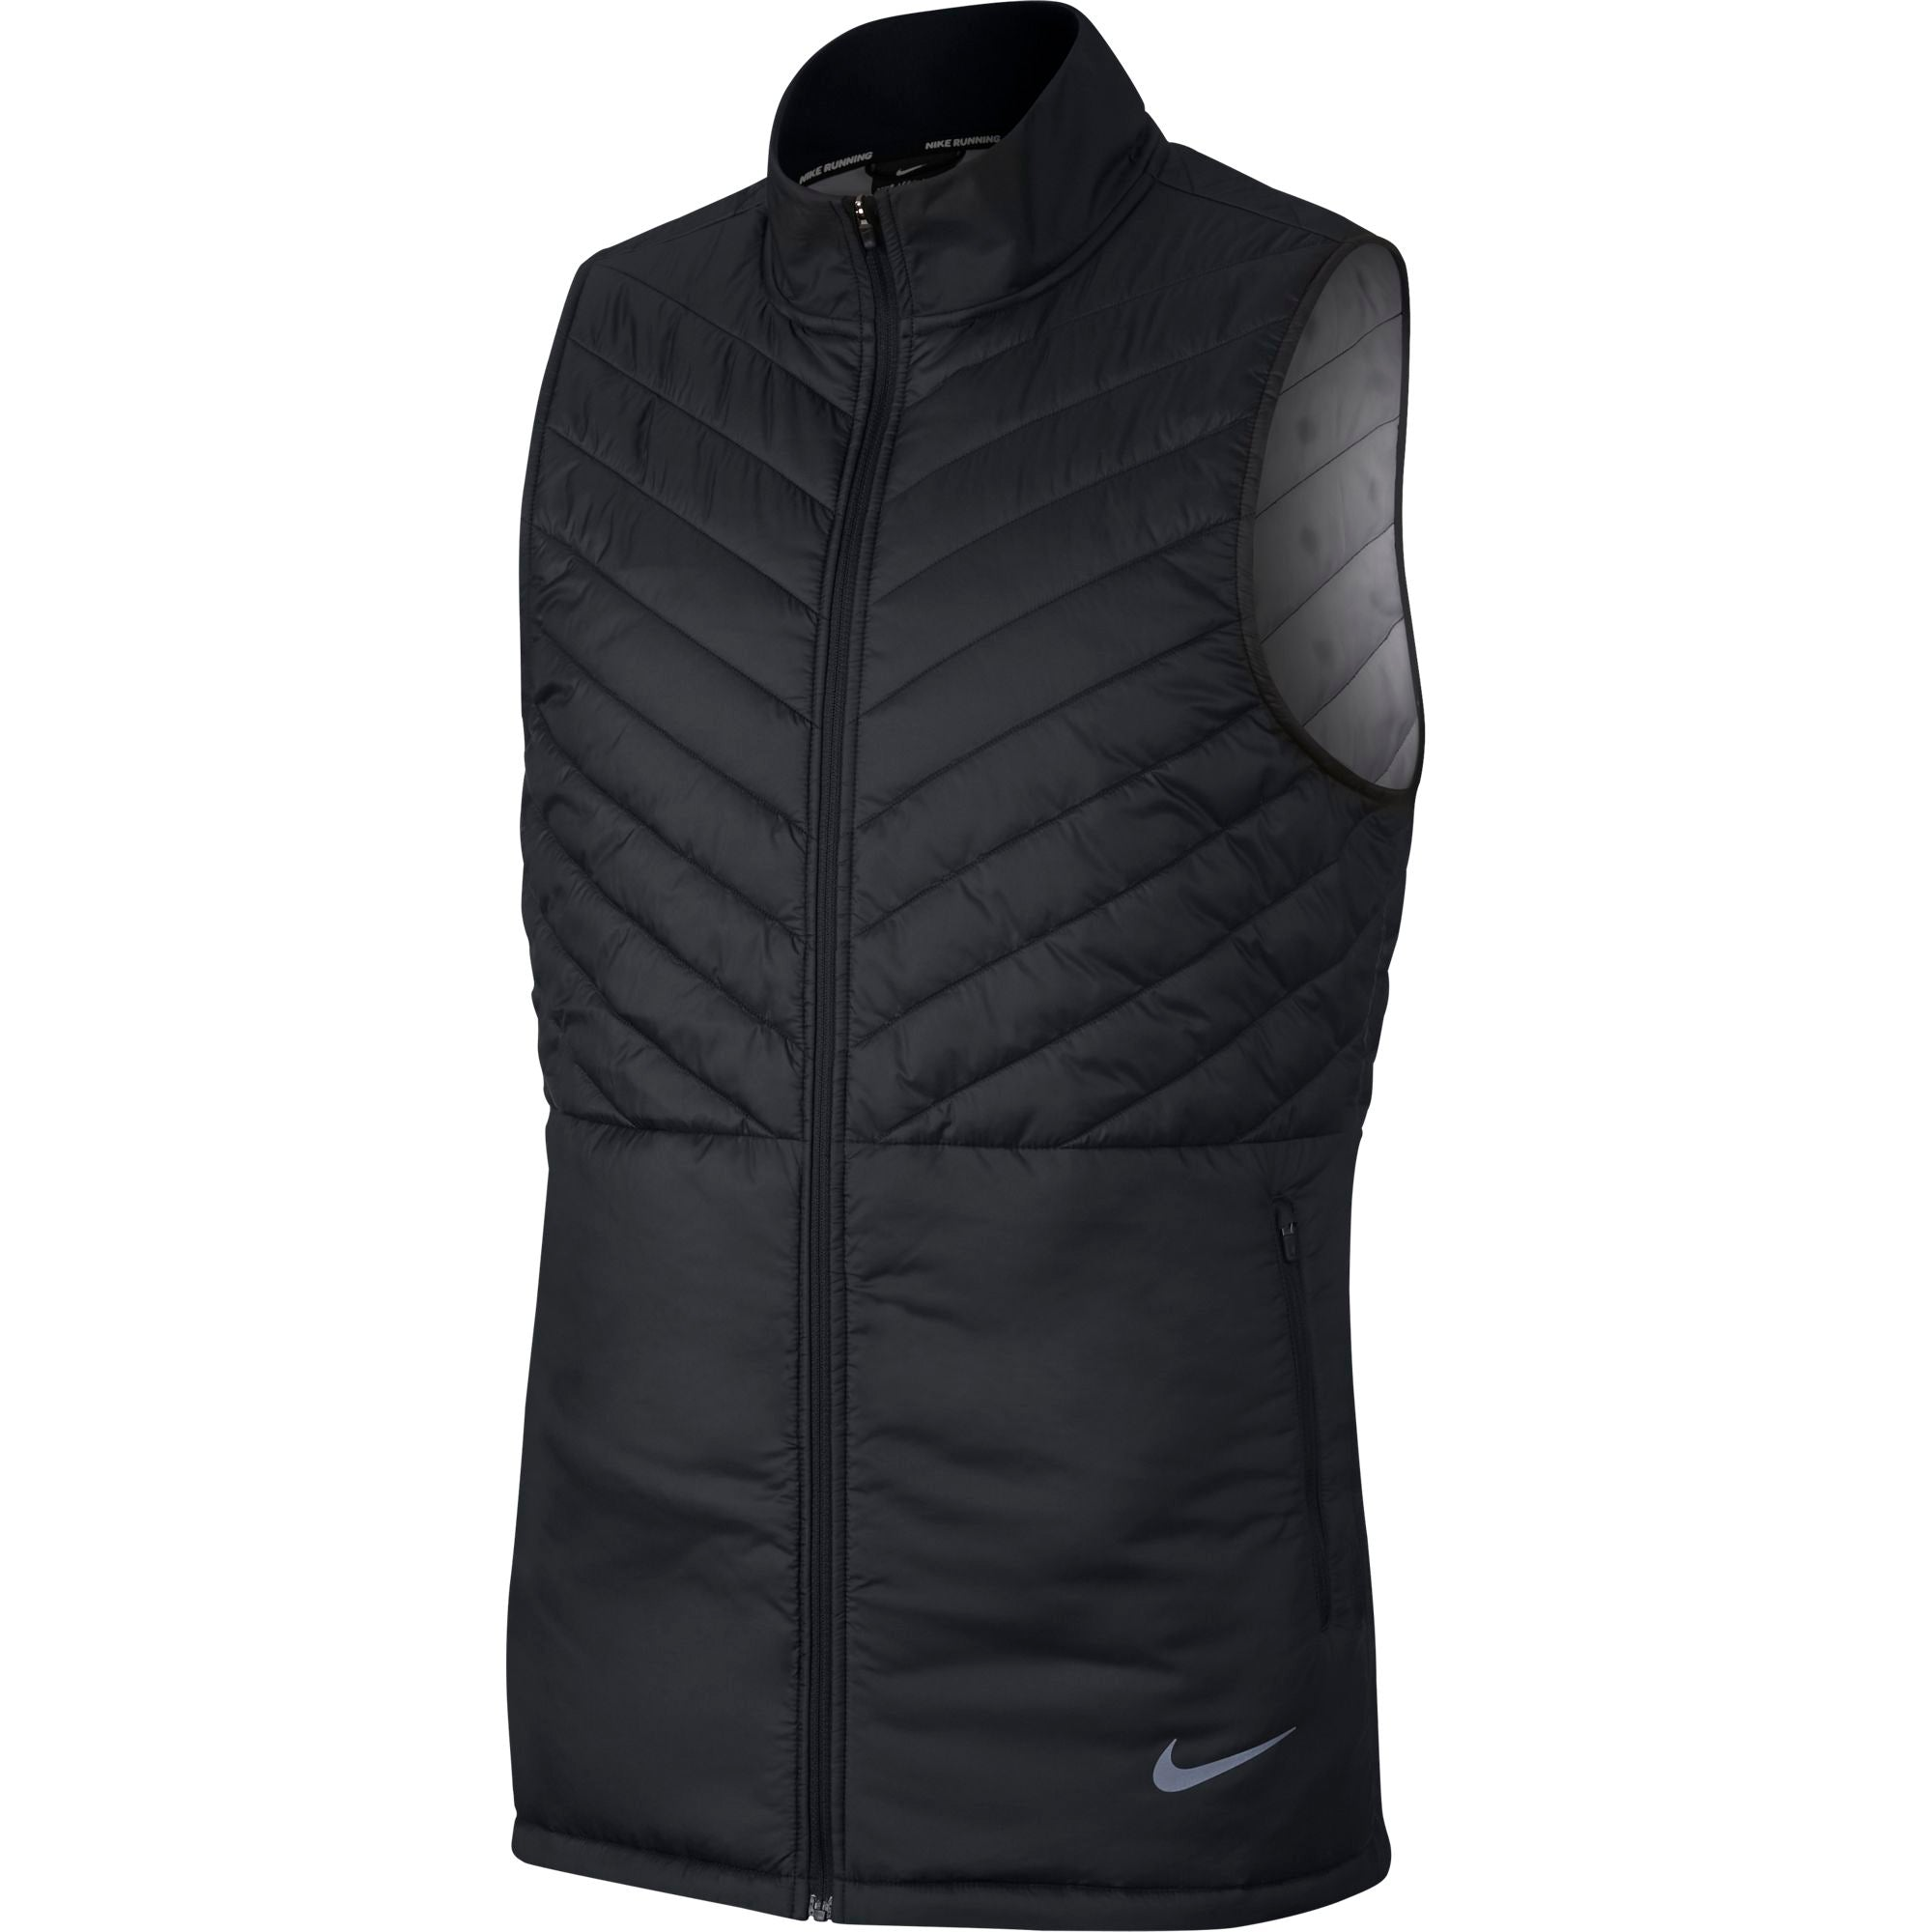 60f96aeb9c70 Men s Nike AeroLayer Running Vest - Black   Black   Atmosphere Grey –  Gazelle Sports